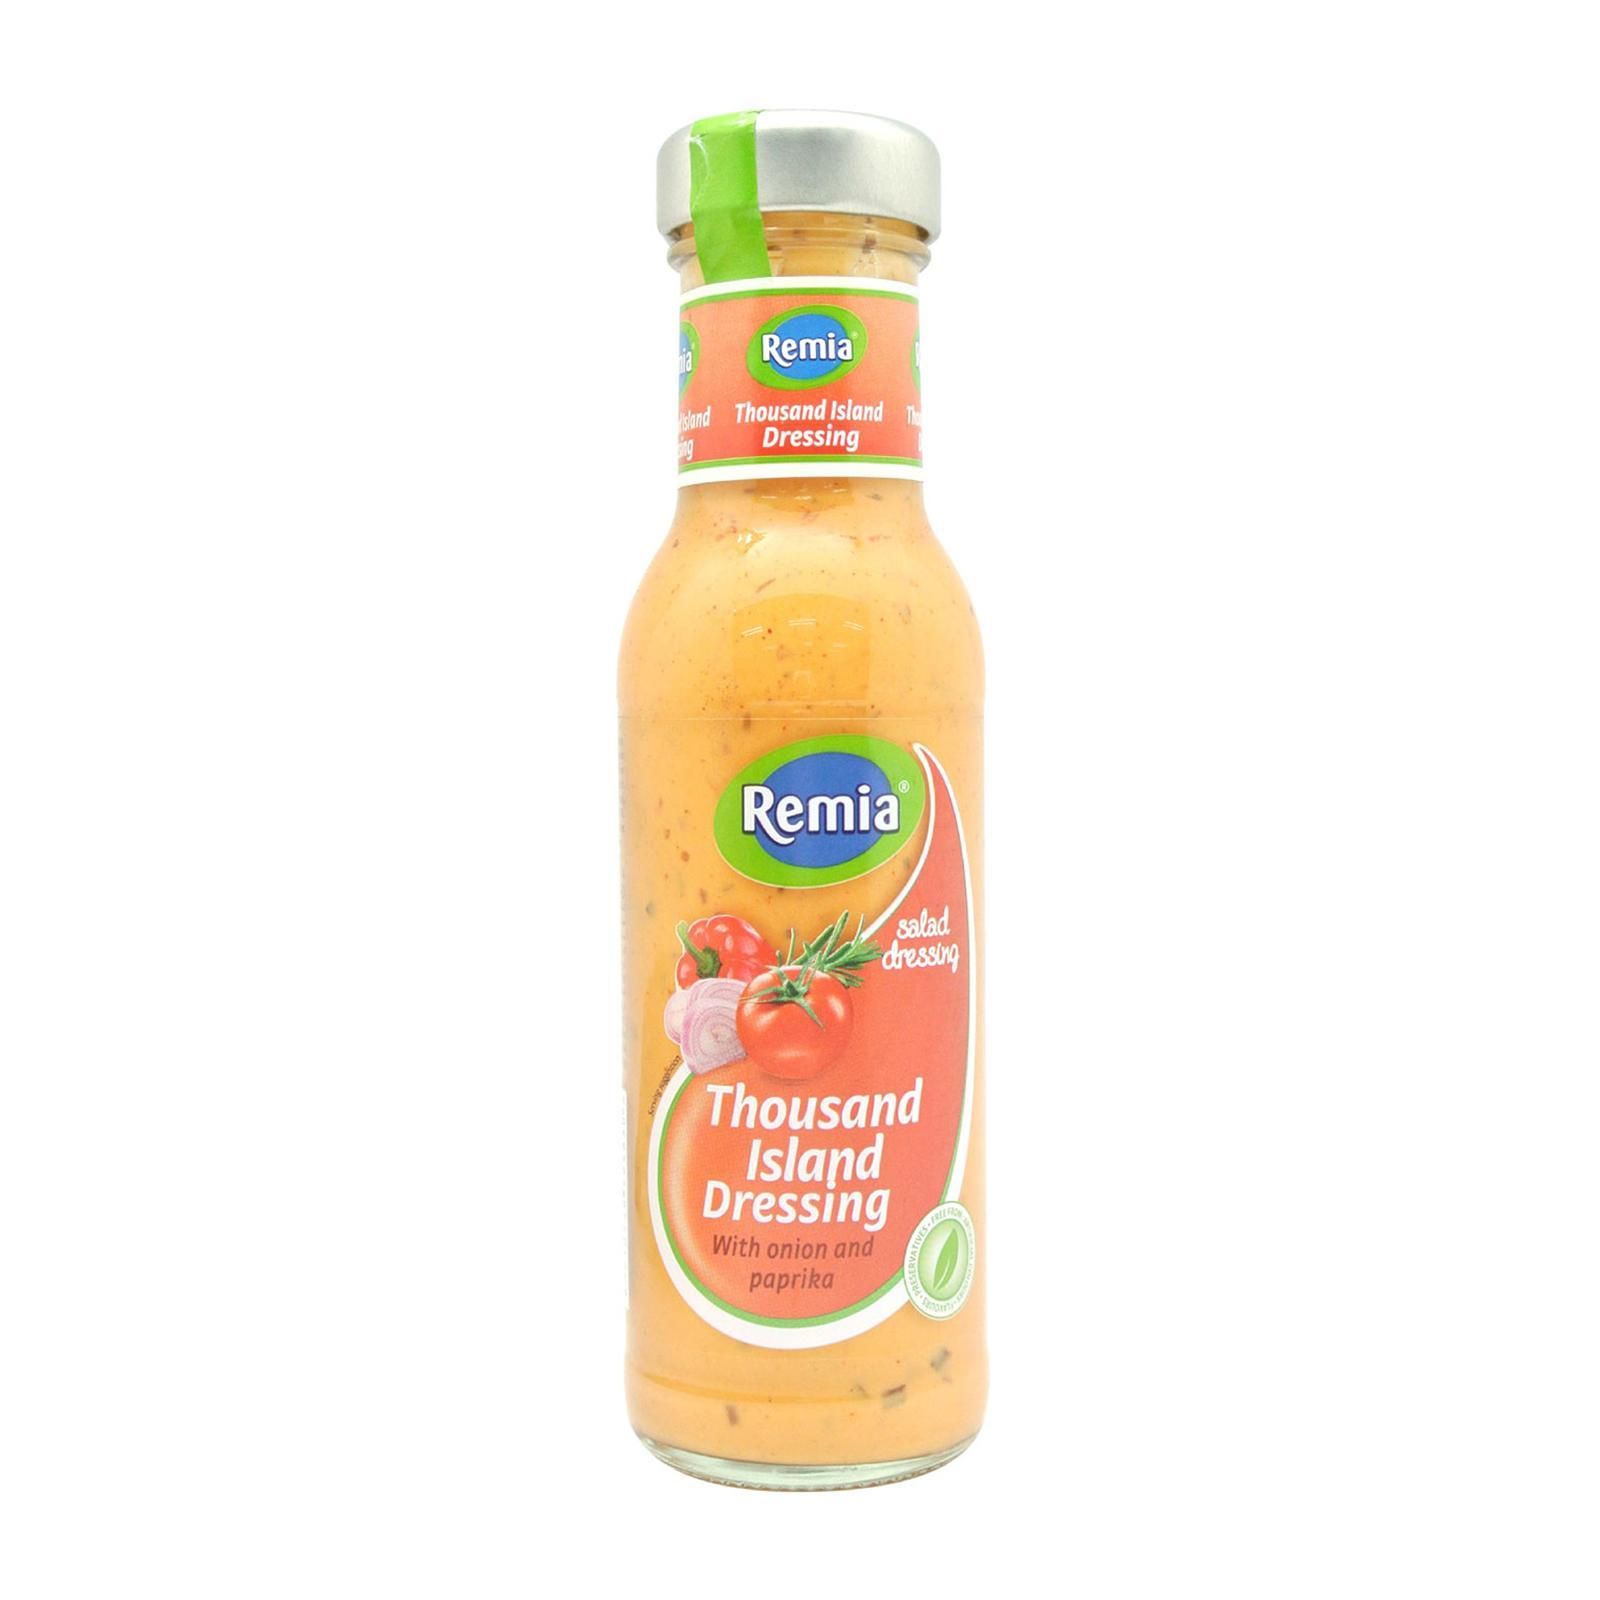 Remia Thousand Island Dressing